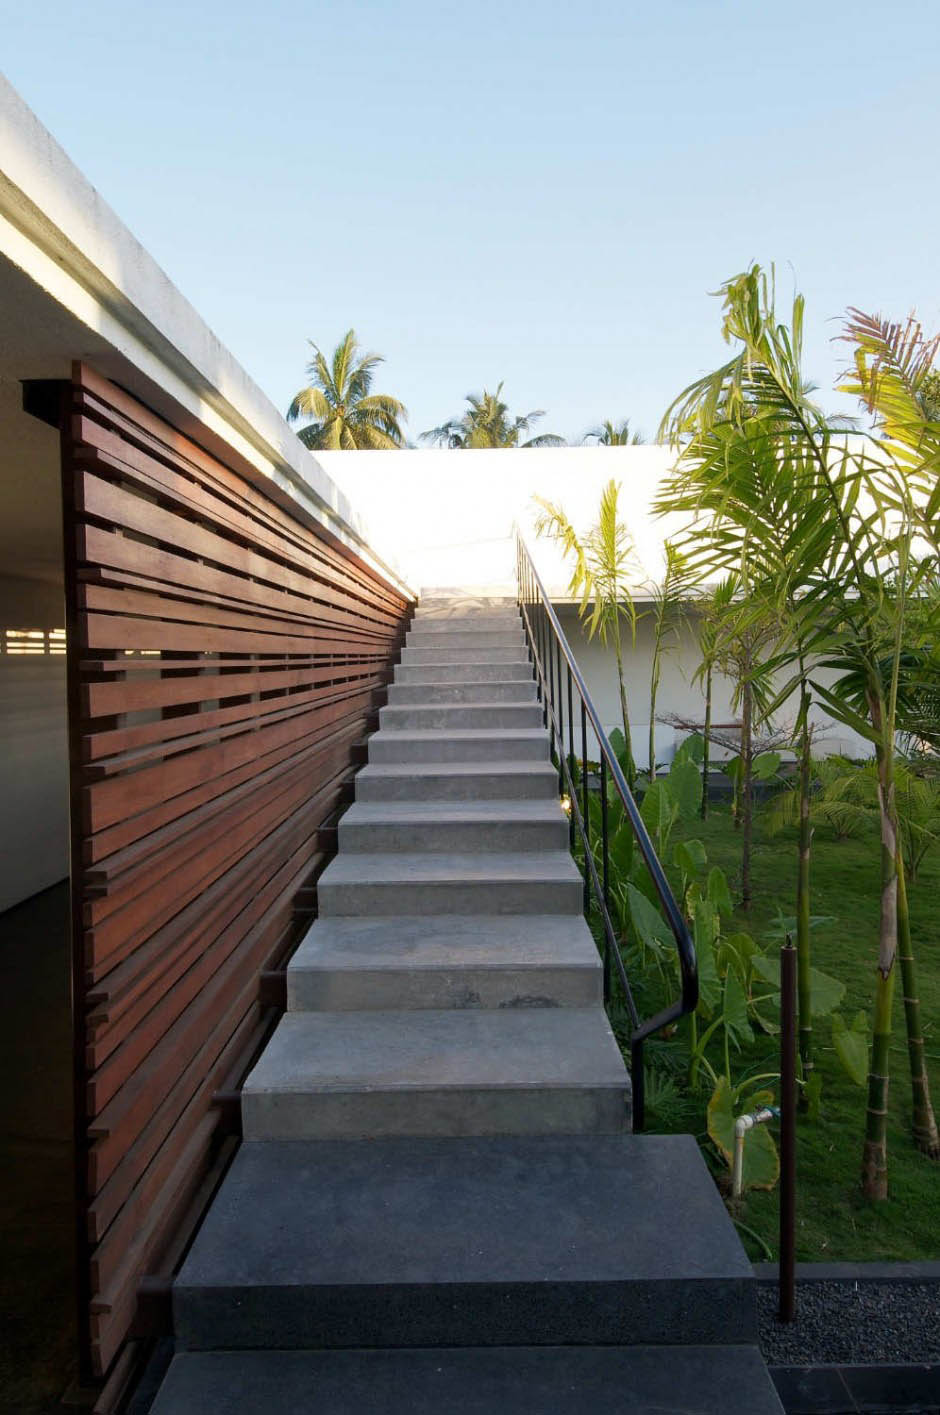 25 Contemporary Outdoor Design Ideas - Decoration Love on Backyard Stairs Design id=94231